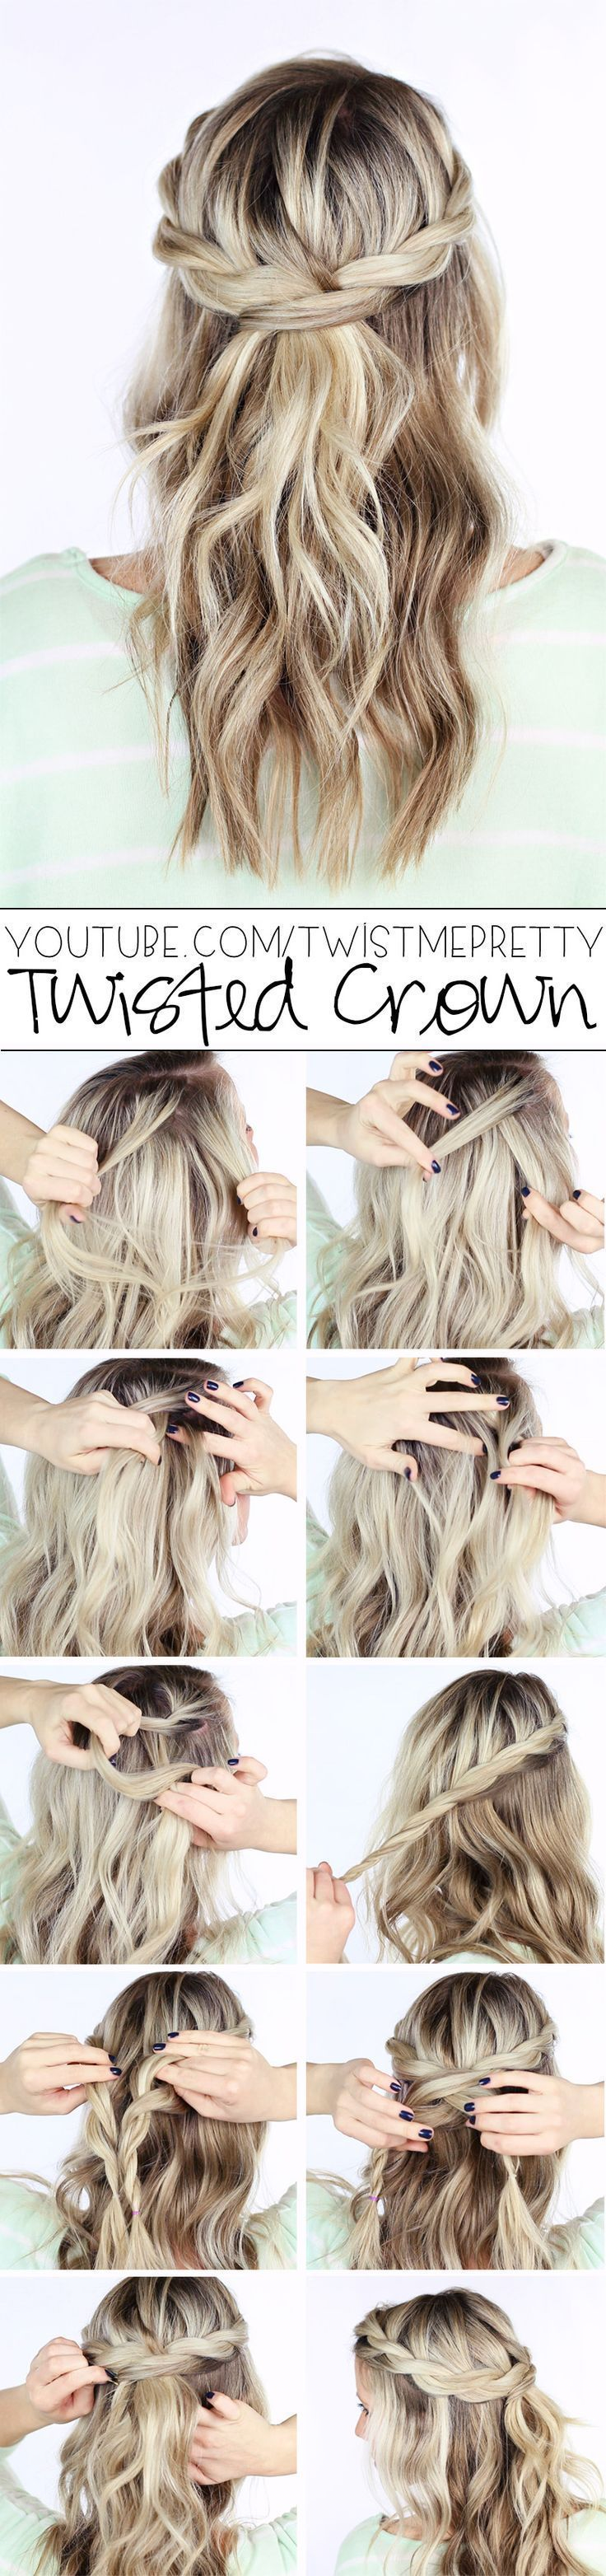 DIY Wedding Hairstyle - Twisted crown braid half up half down hairstyle—Pretty!